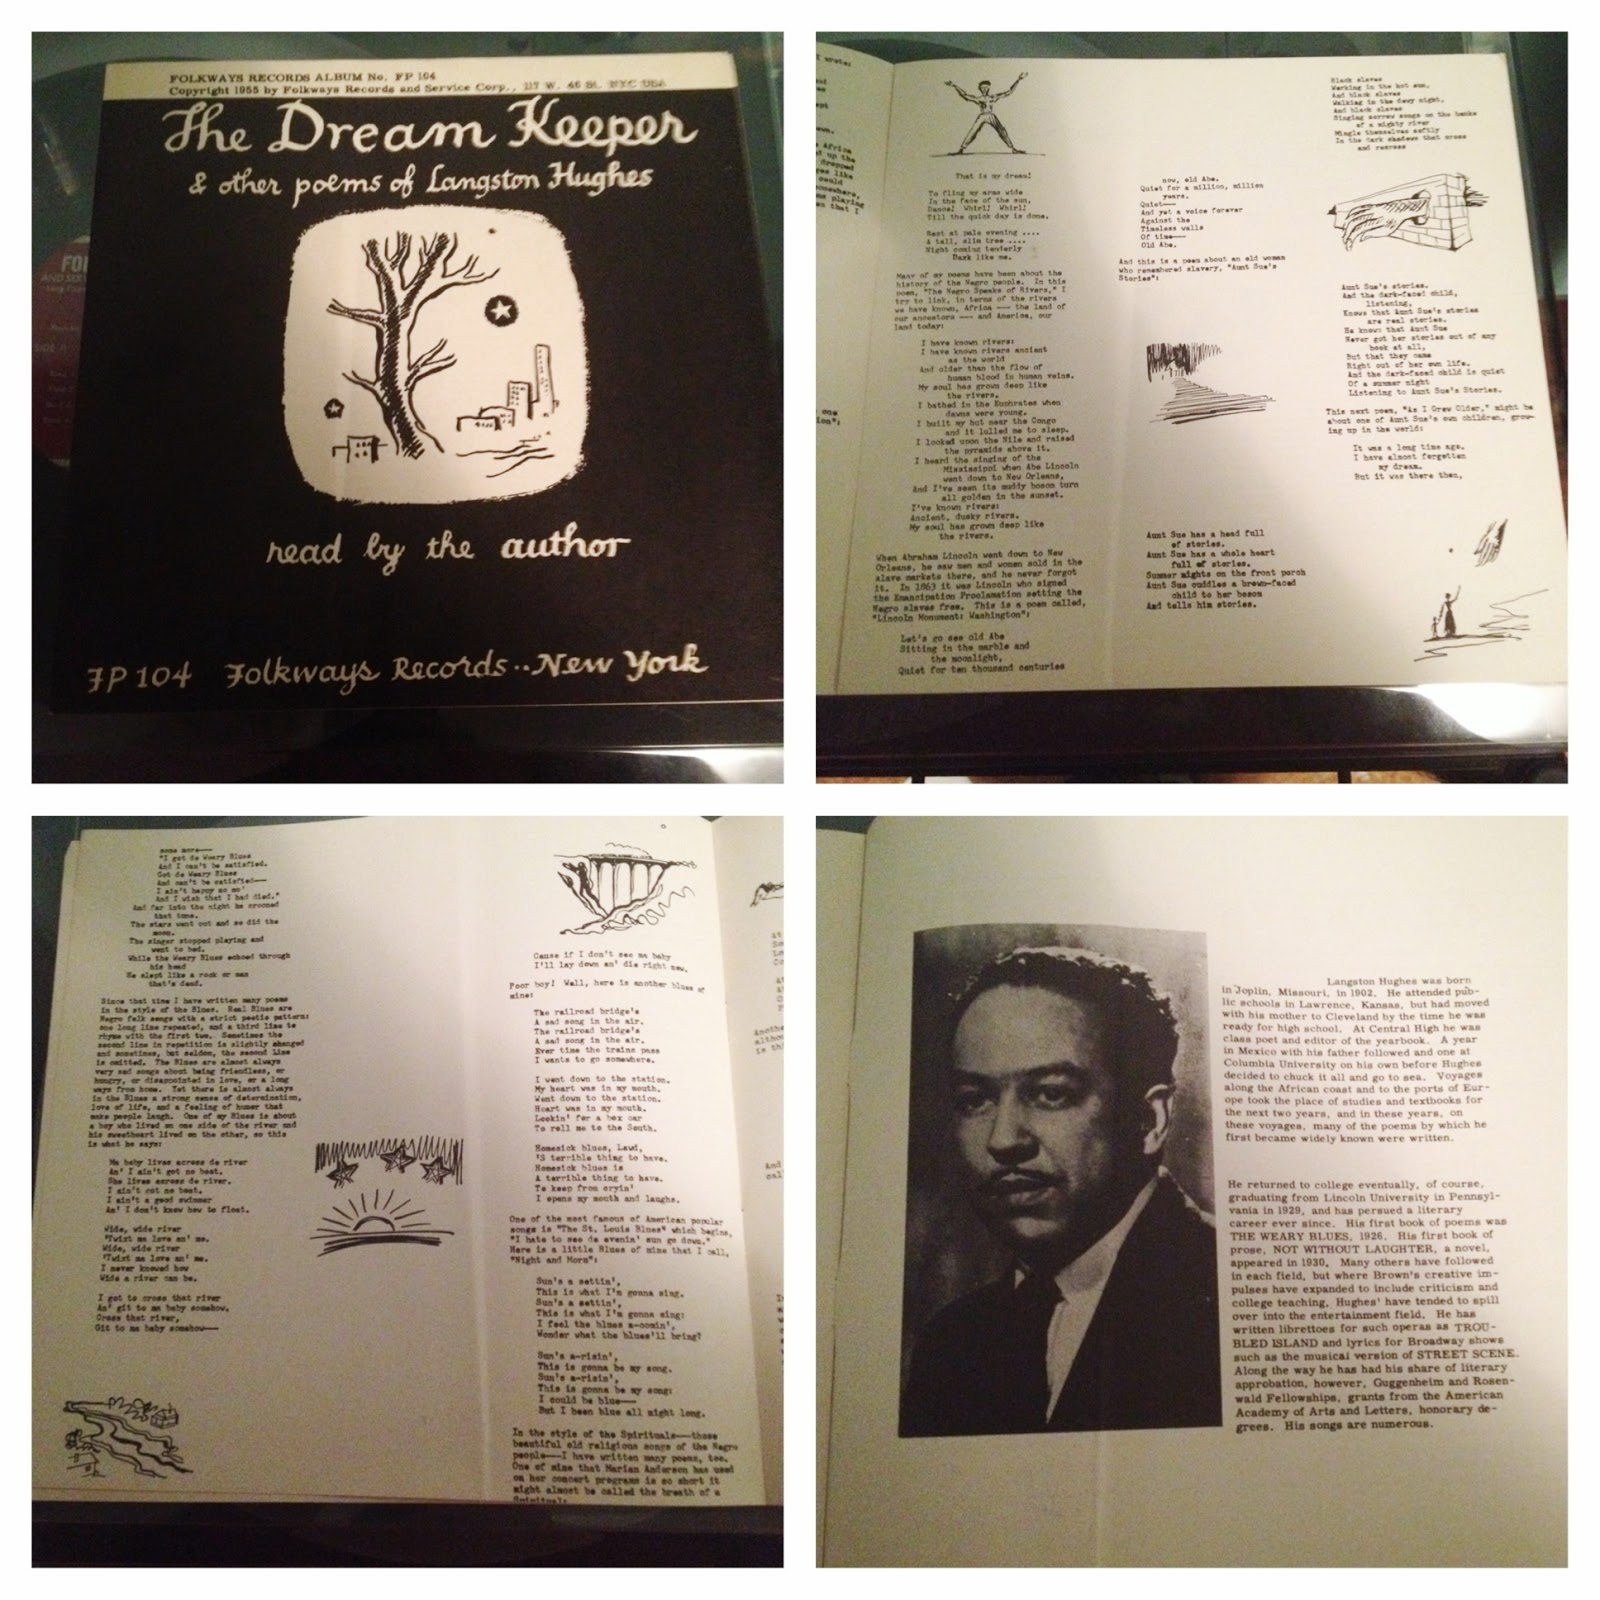 the use of symbolism personification and form in theme for english b by langston hughes Langston hughes, theme for english b from collected poems copyright © 1994 by the estate of langston hughes langston hughes was first recognized as an important literary figure during the 1920s, a period known as the harlem renaissance because of the number of emerging black writers.